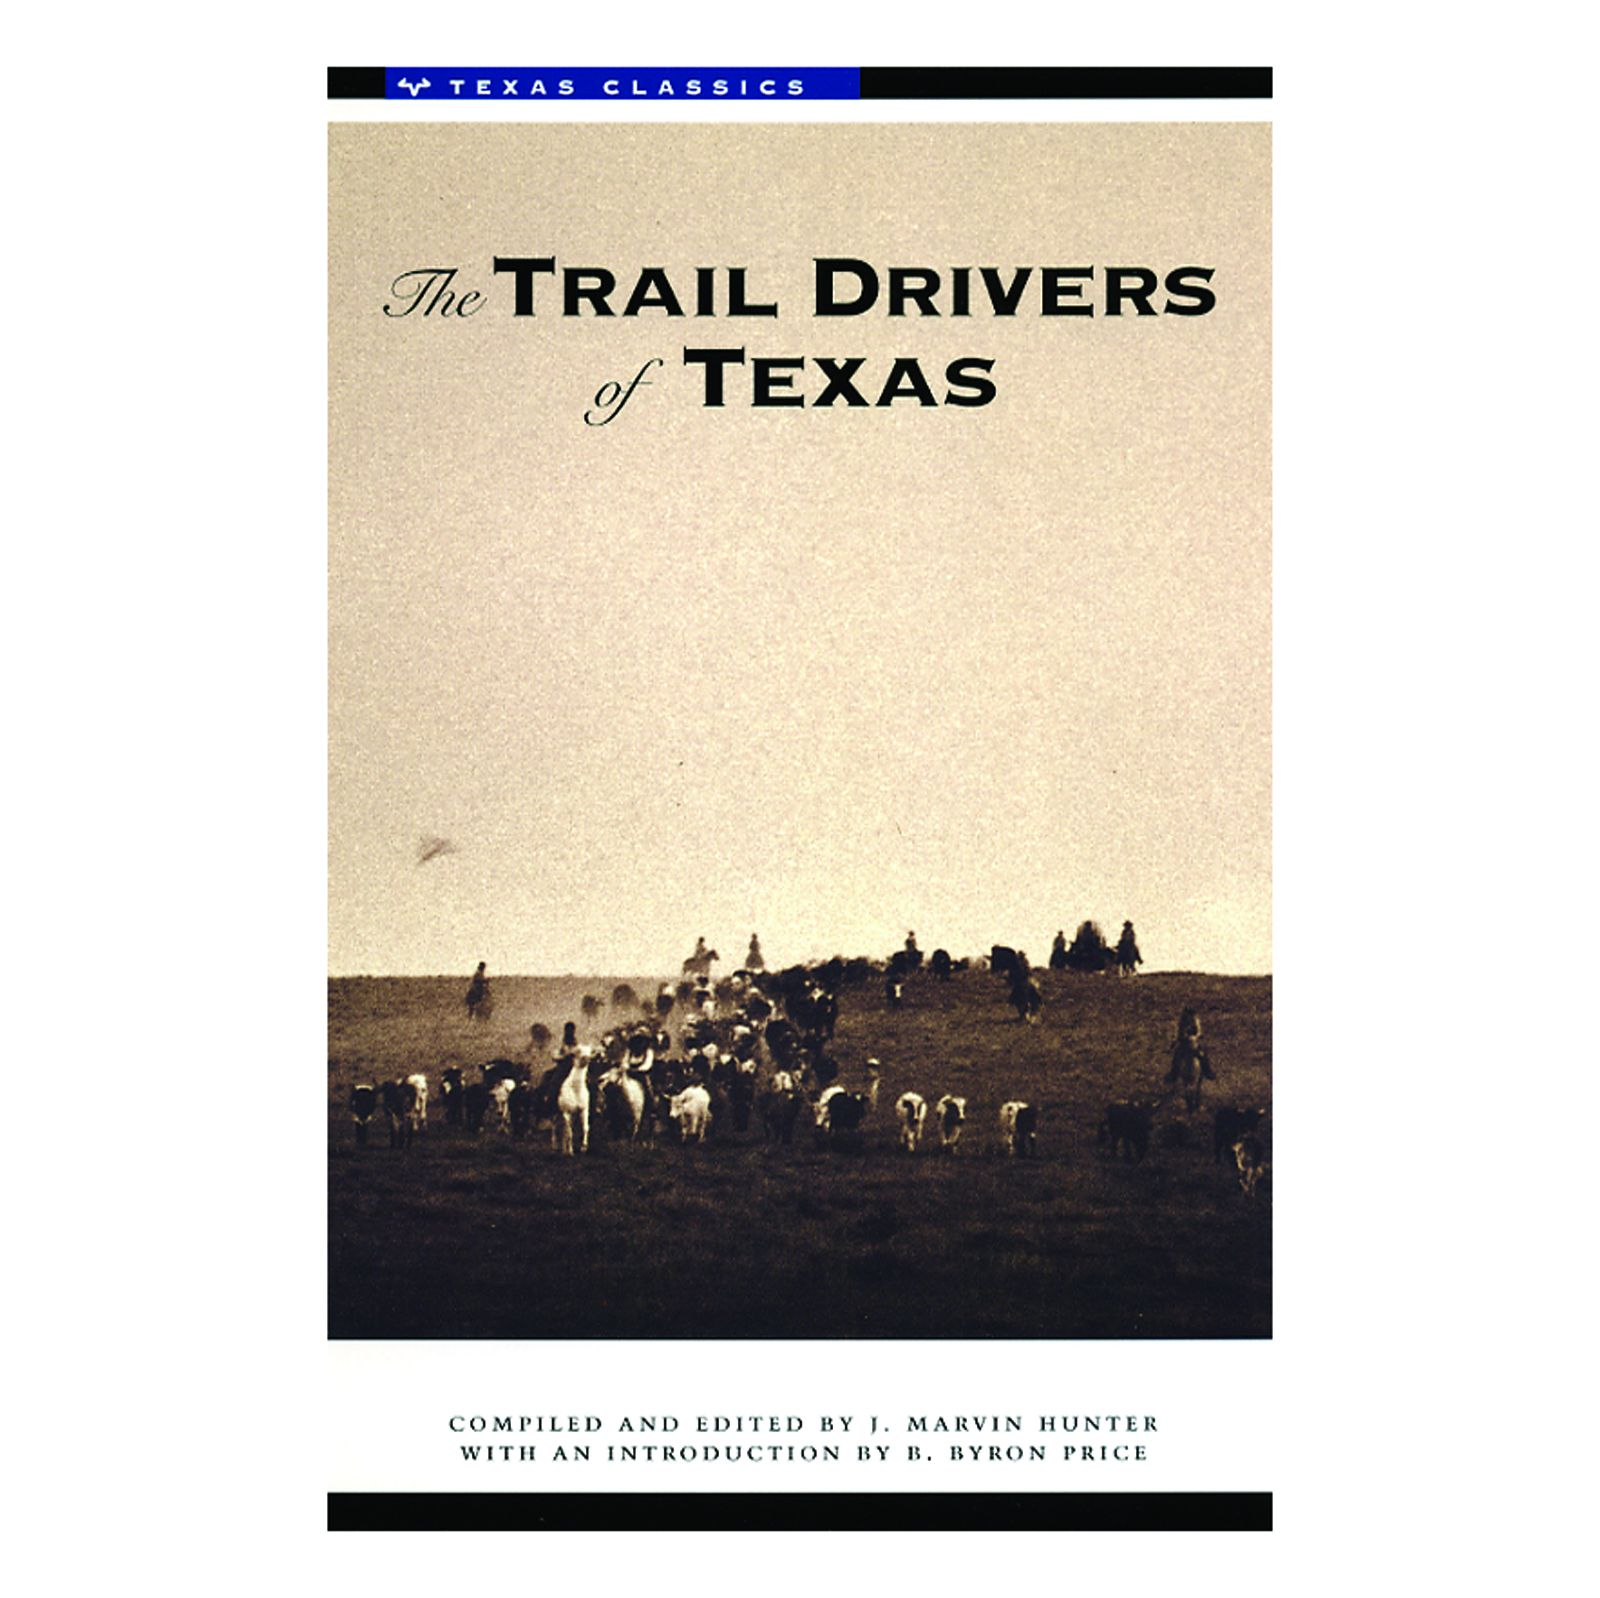 The Trail Drivers of Texas